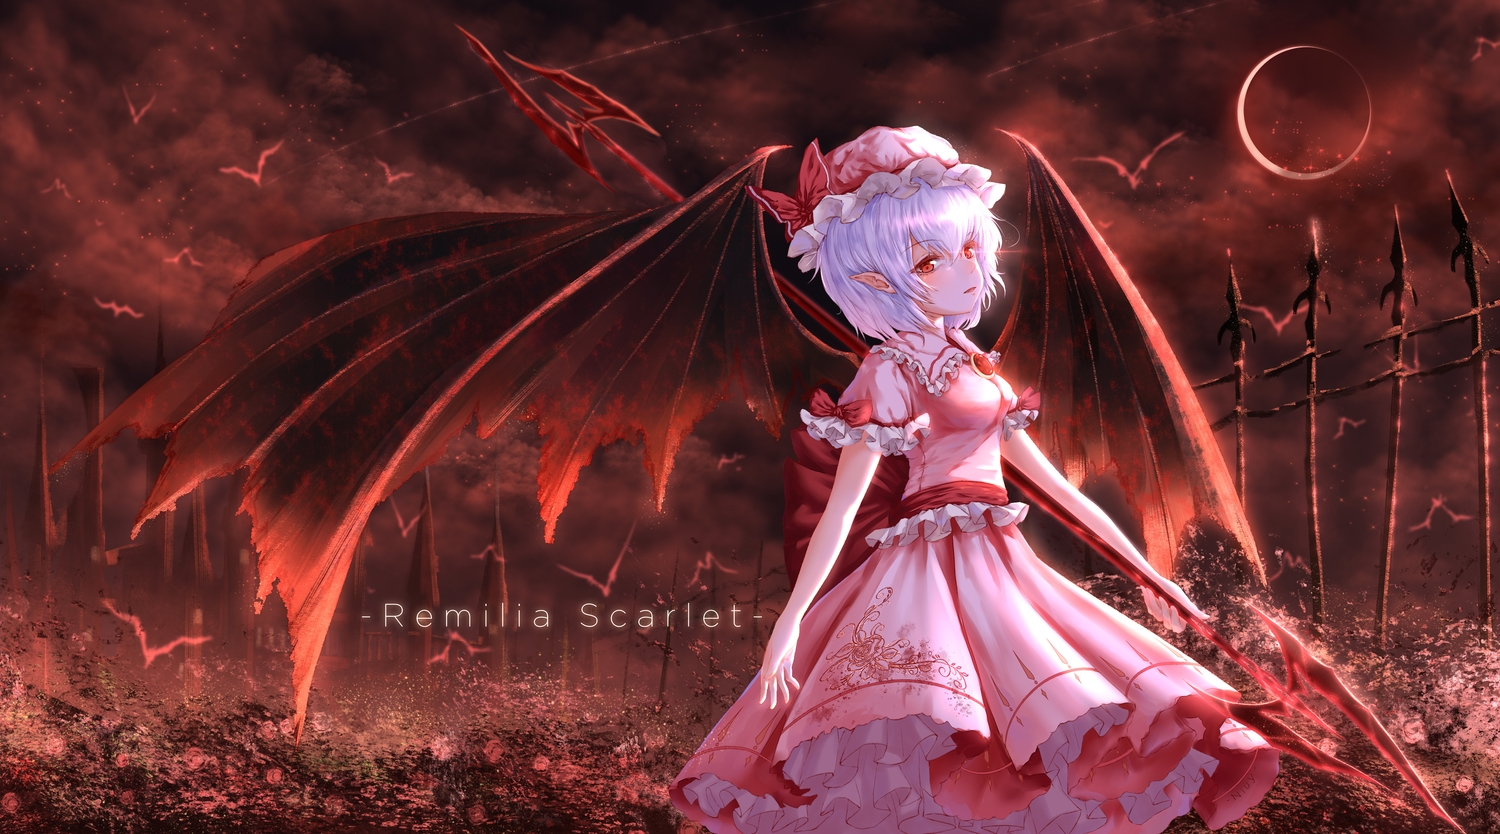 moon niuy red remilia_scarlet spear touhou vampire weapon wings